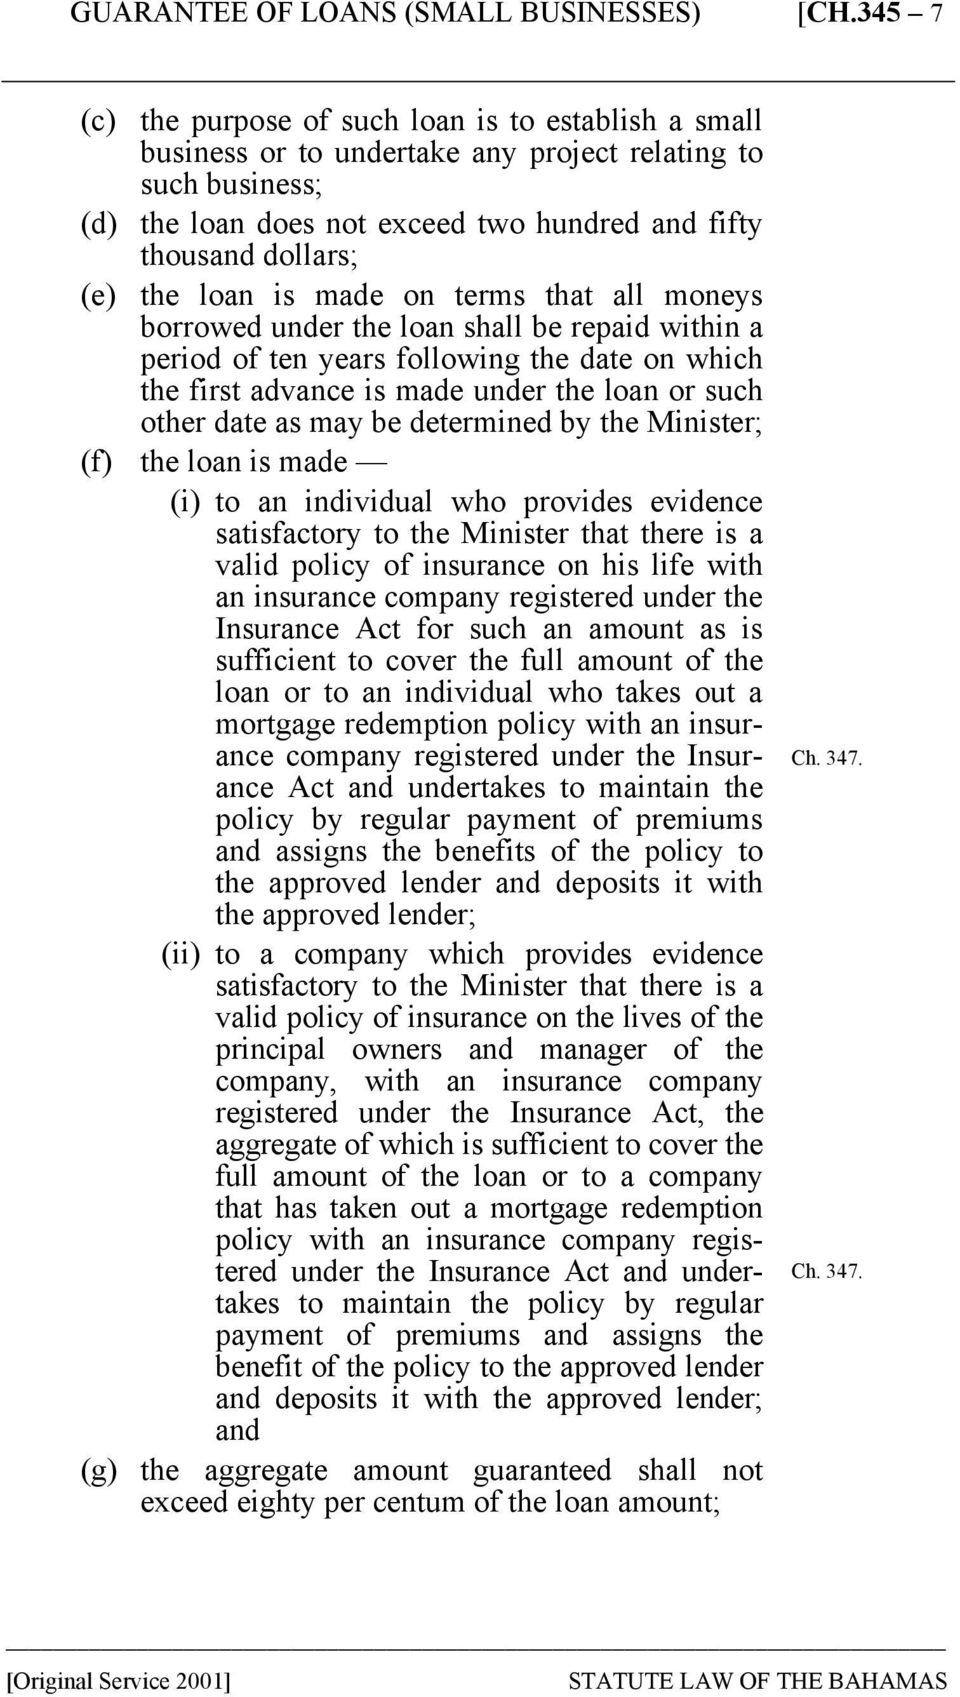 as may be determined by the Minister; (f) the loan is made (i) to an individual who provides evidence satisfactory to the Minister that there is a valid policy of insurance on his life with an